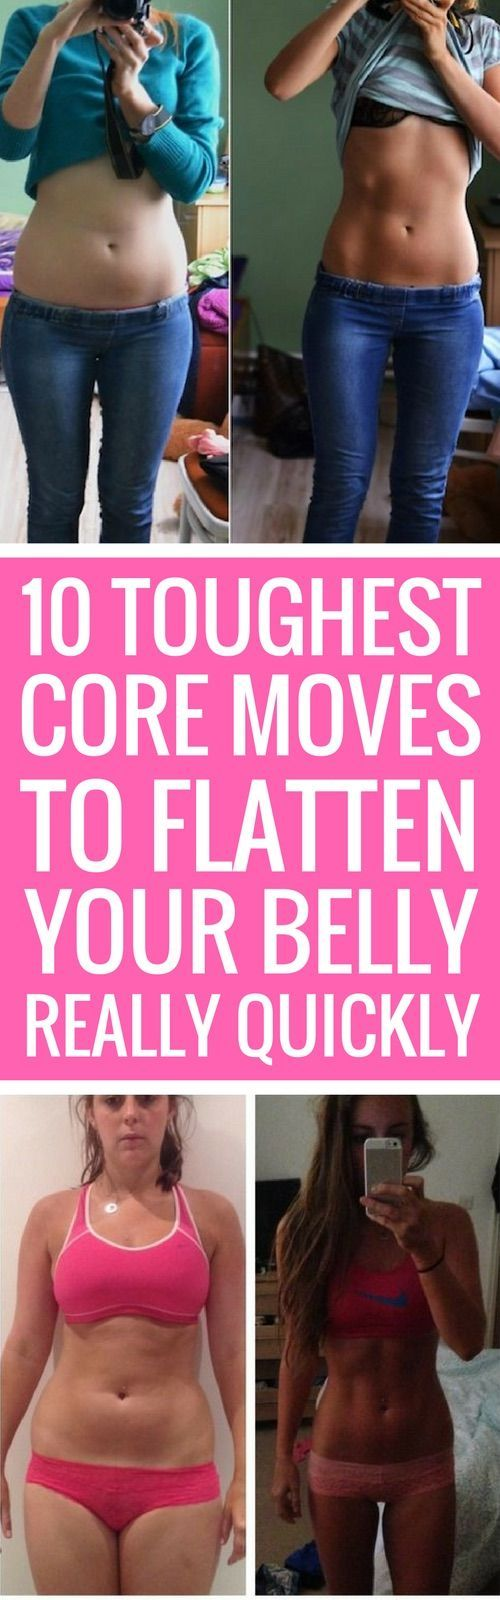 Who doesn't want a tight and toned core, and perhaps abs that pop? In addition to looking great, a strong core really cuts down on back soreness and aches and pains, so core training isn't just vanity, it's healthy! Here aresome of our favorite core-strengthening exercises to get you baring your belly and standing straighter … - Tap the pin if you love super heroes too! Cause guess what? you will LOVE these super hero fitness shirts!